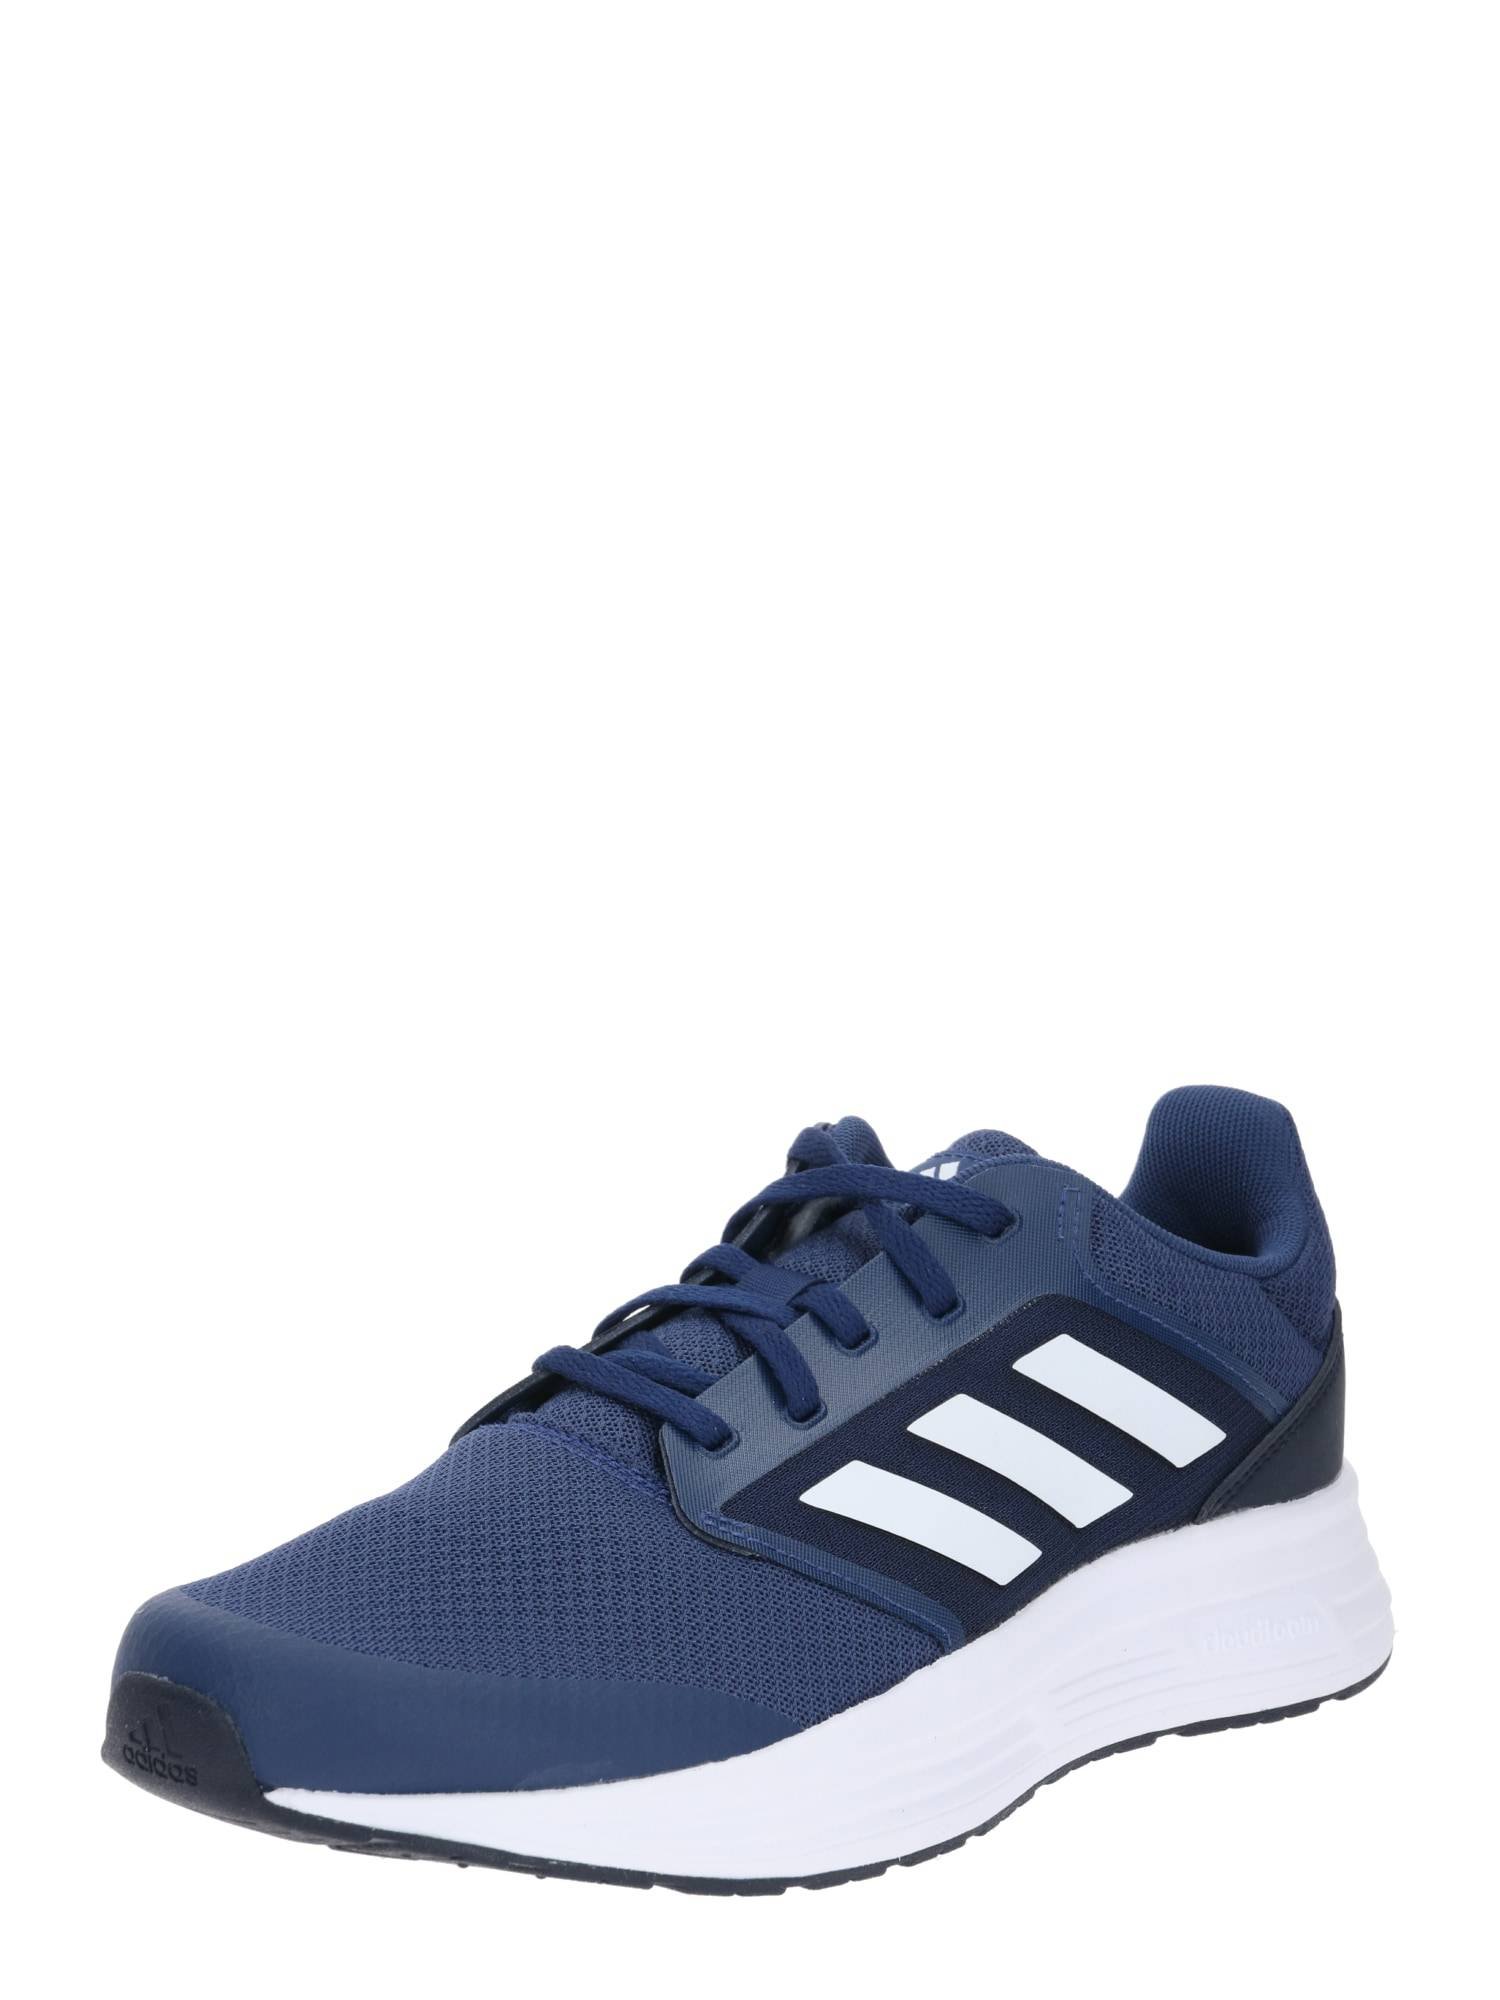 ADIDAS PERFORMANCE Chaussure de course 'Galaxy 5'  - Bleu - Taille: 45-45.5 - male